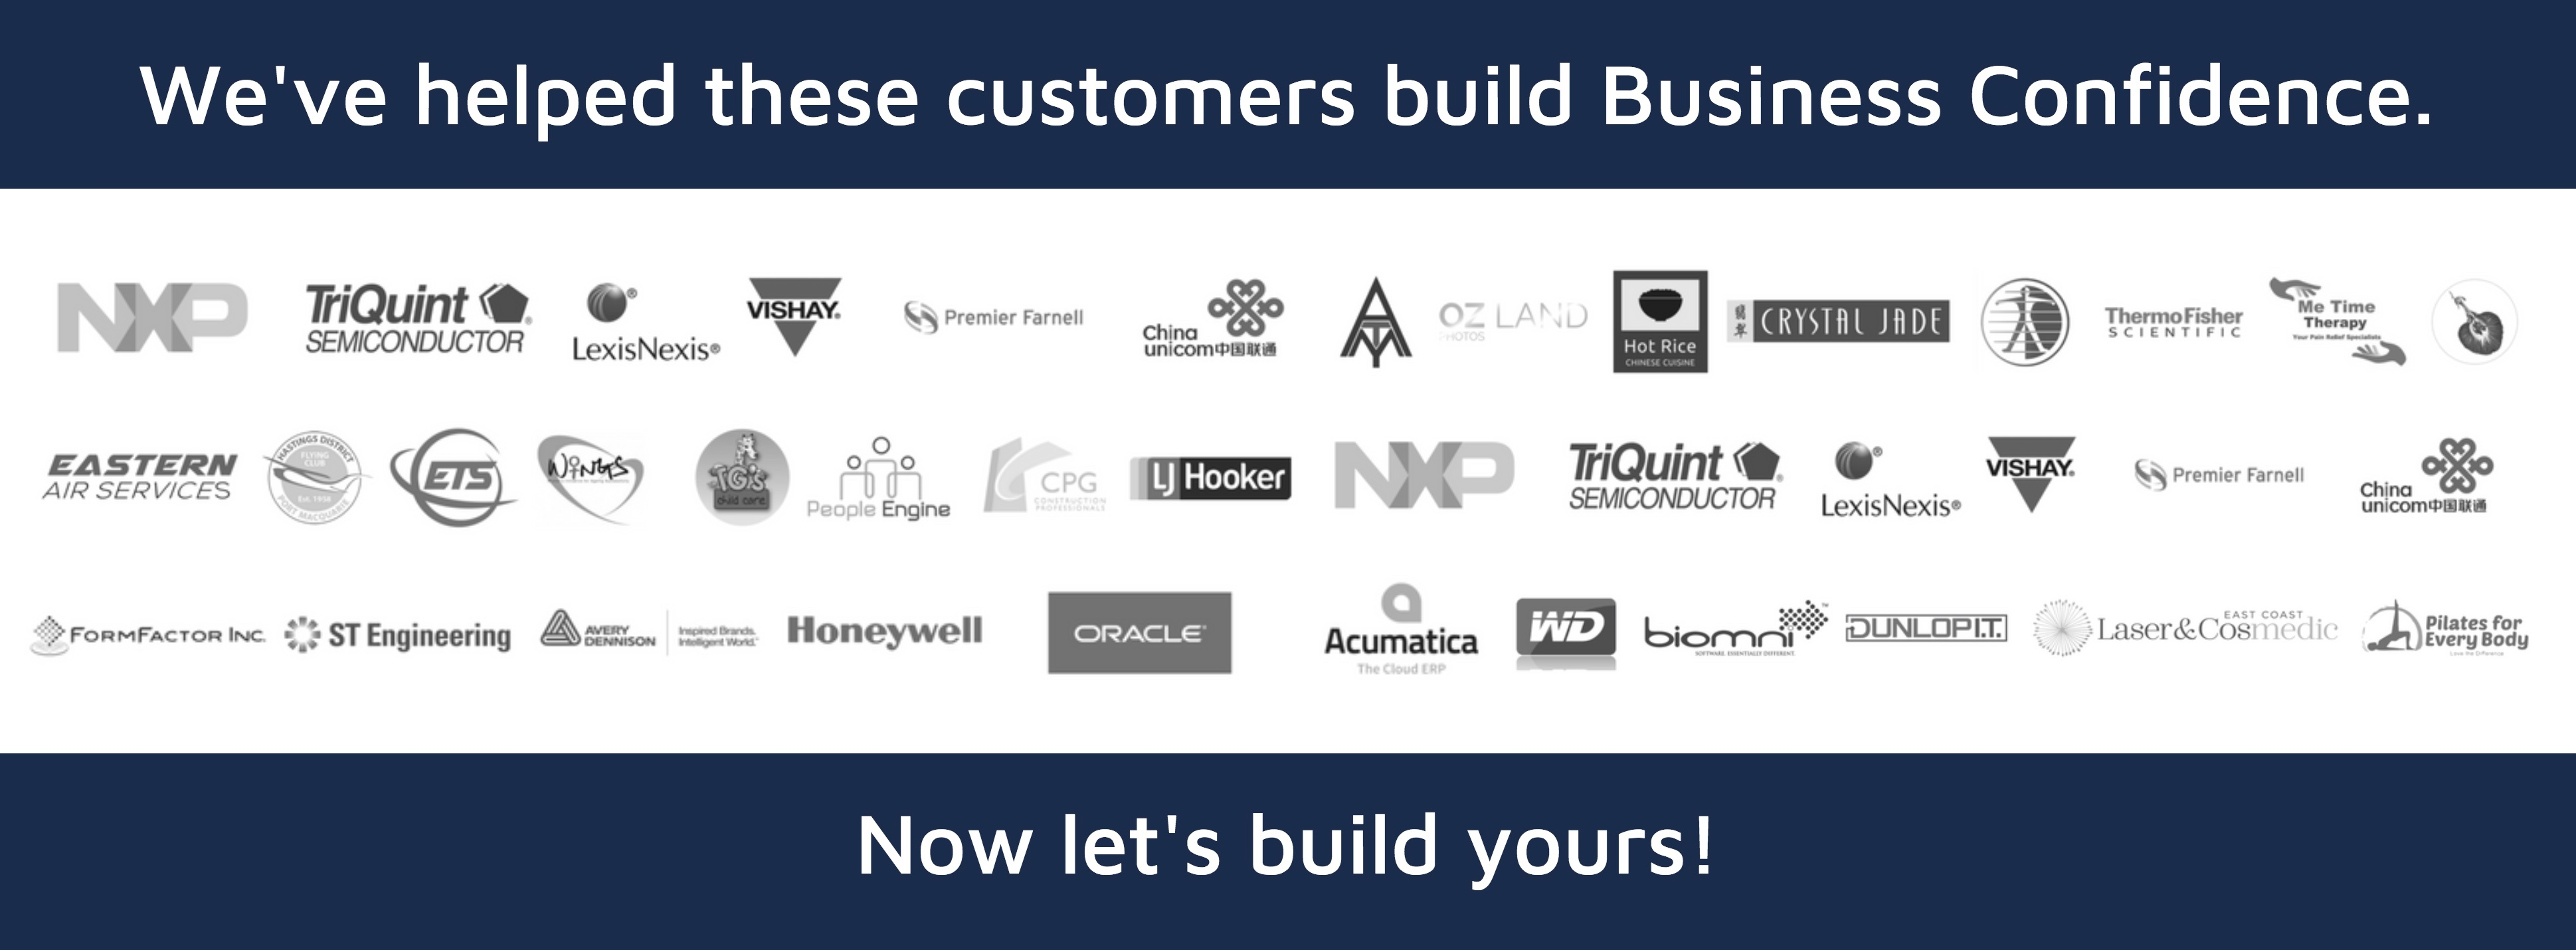 We helped these companies build business confidence. Now let's build yours. Vermilion Pinstripes Sales Marketing Communications Port Macquarie Australia and Singapore.jpg